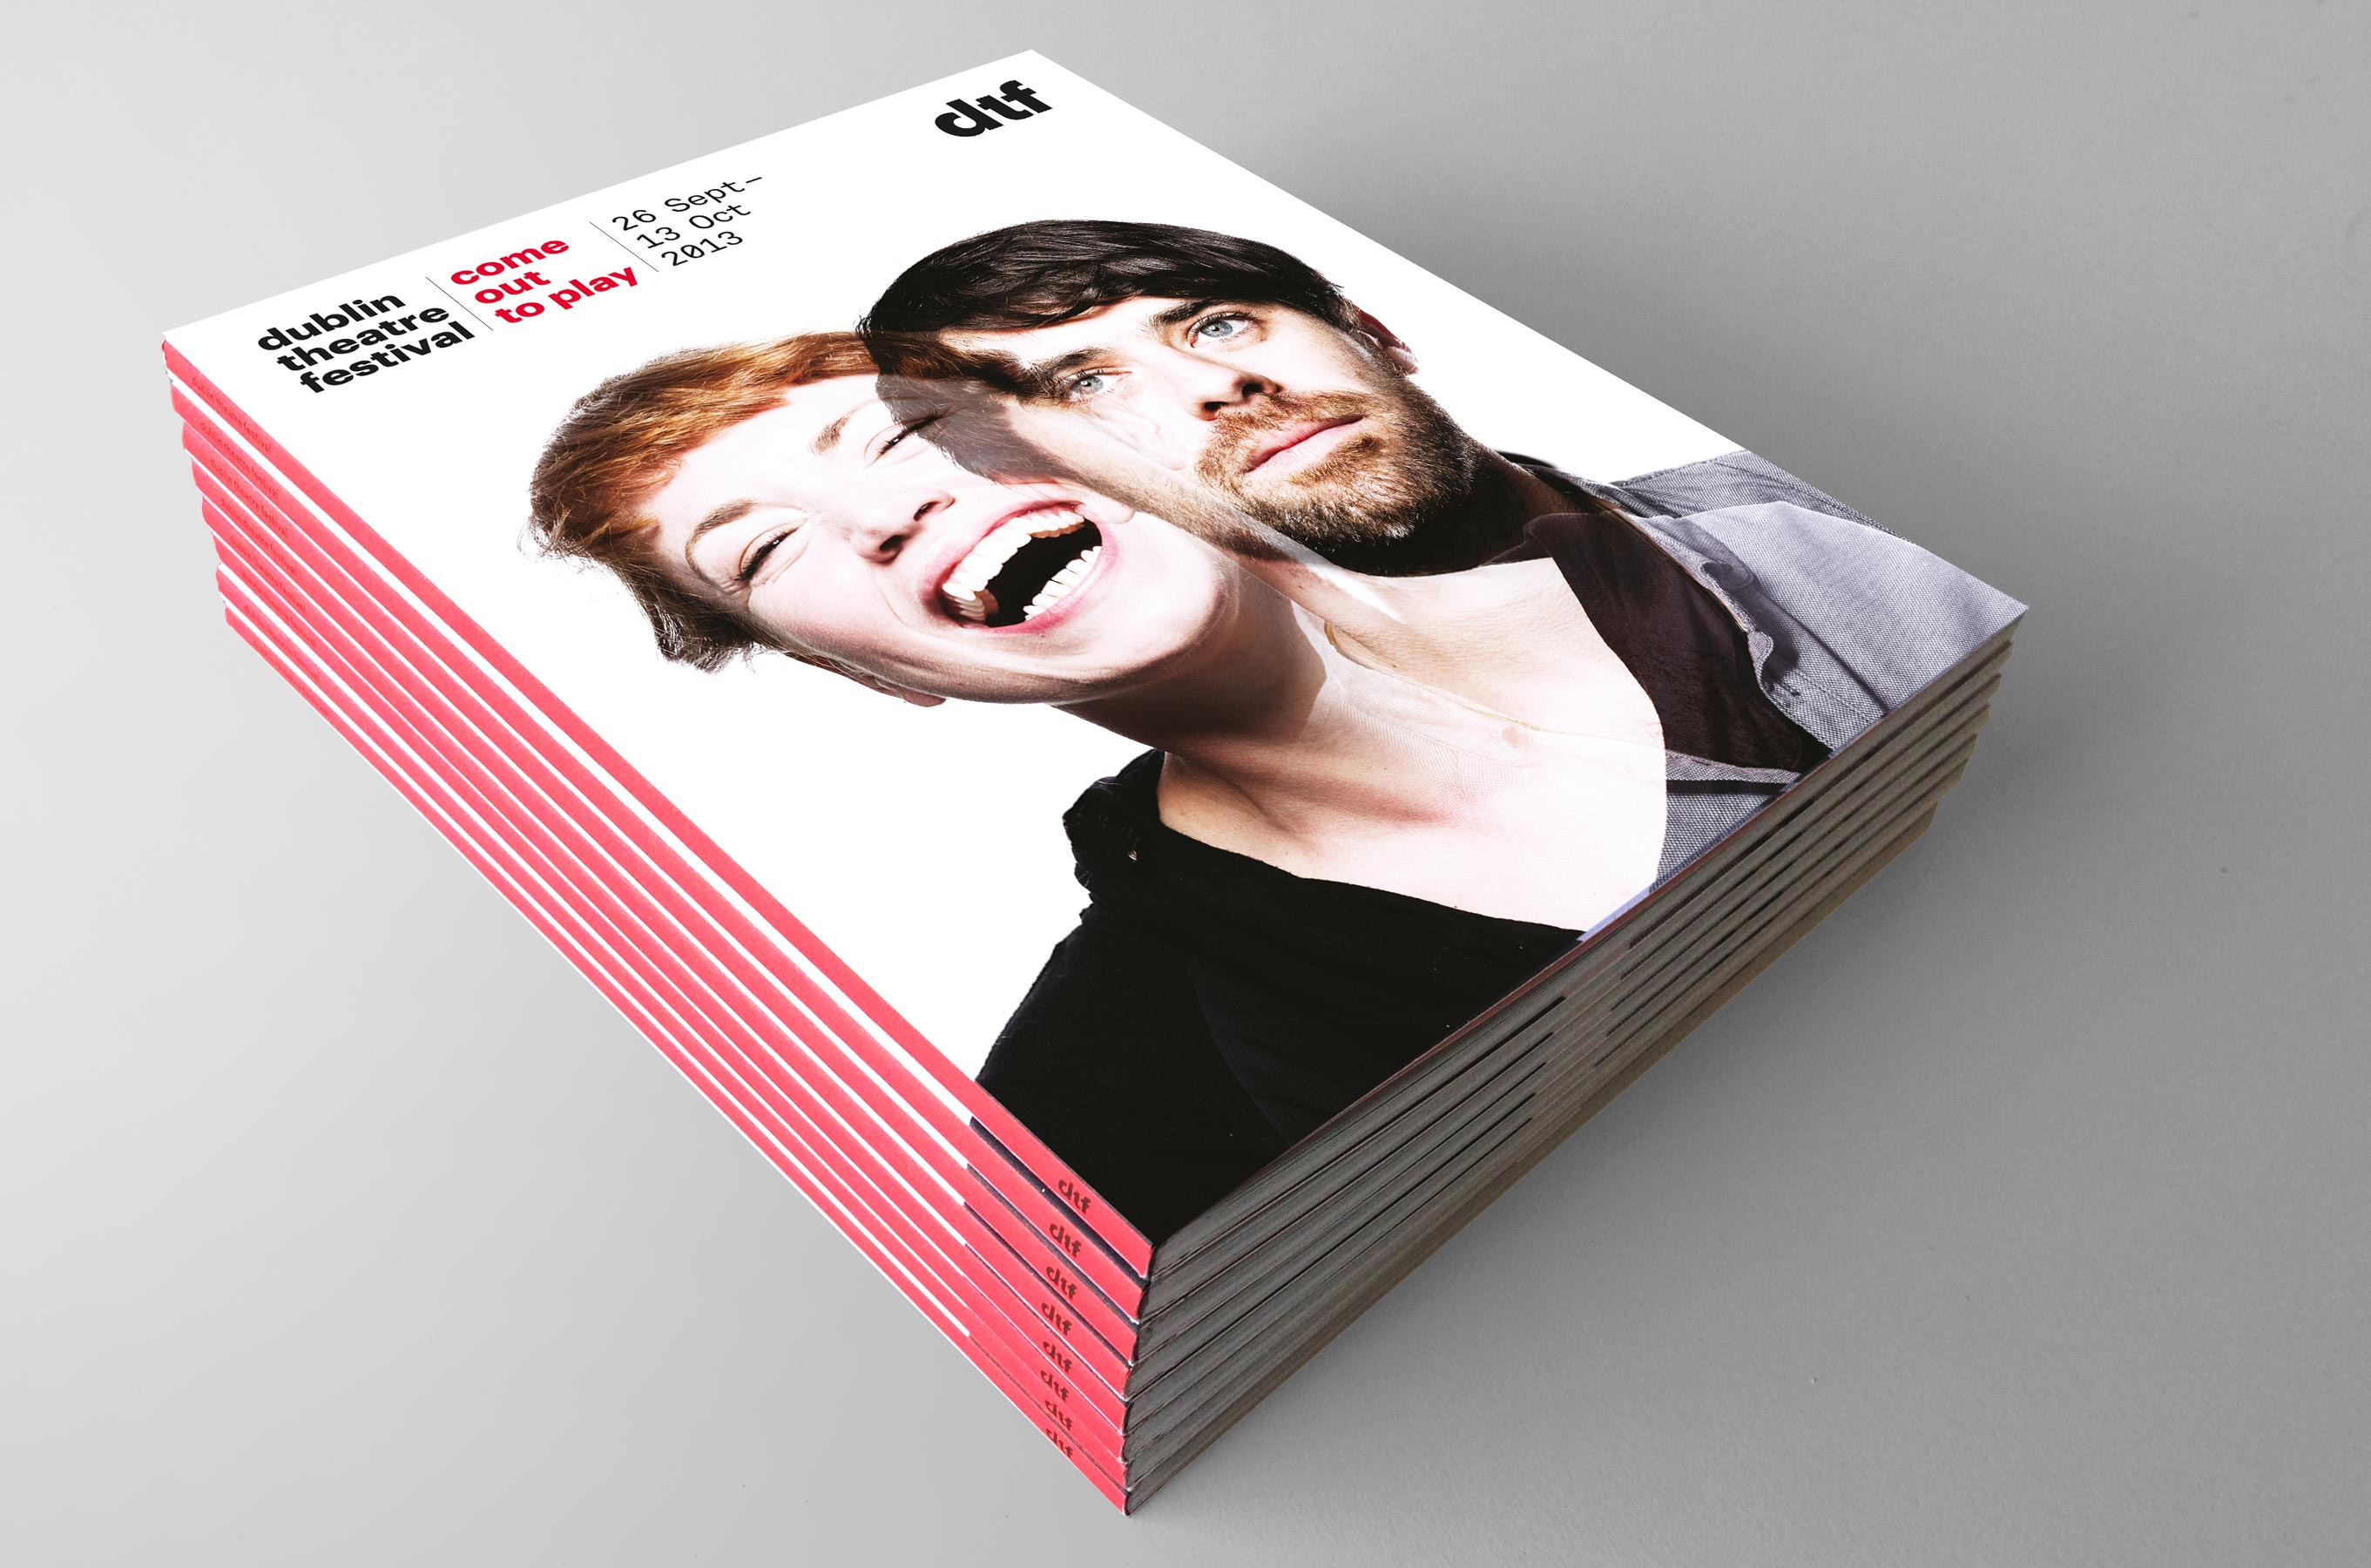 13/15 Dublin Theatre Festival — Rebrand and collateral 2013